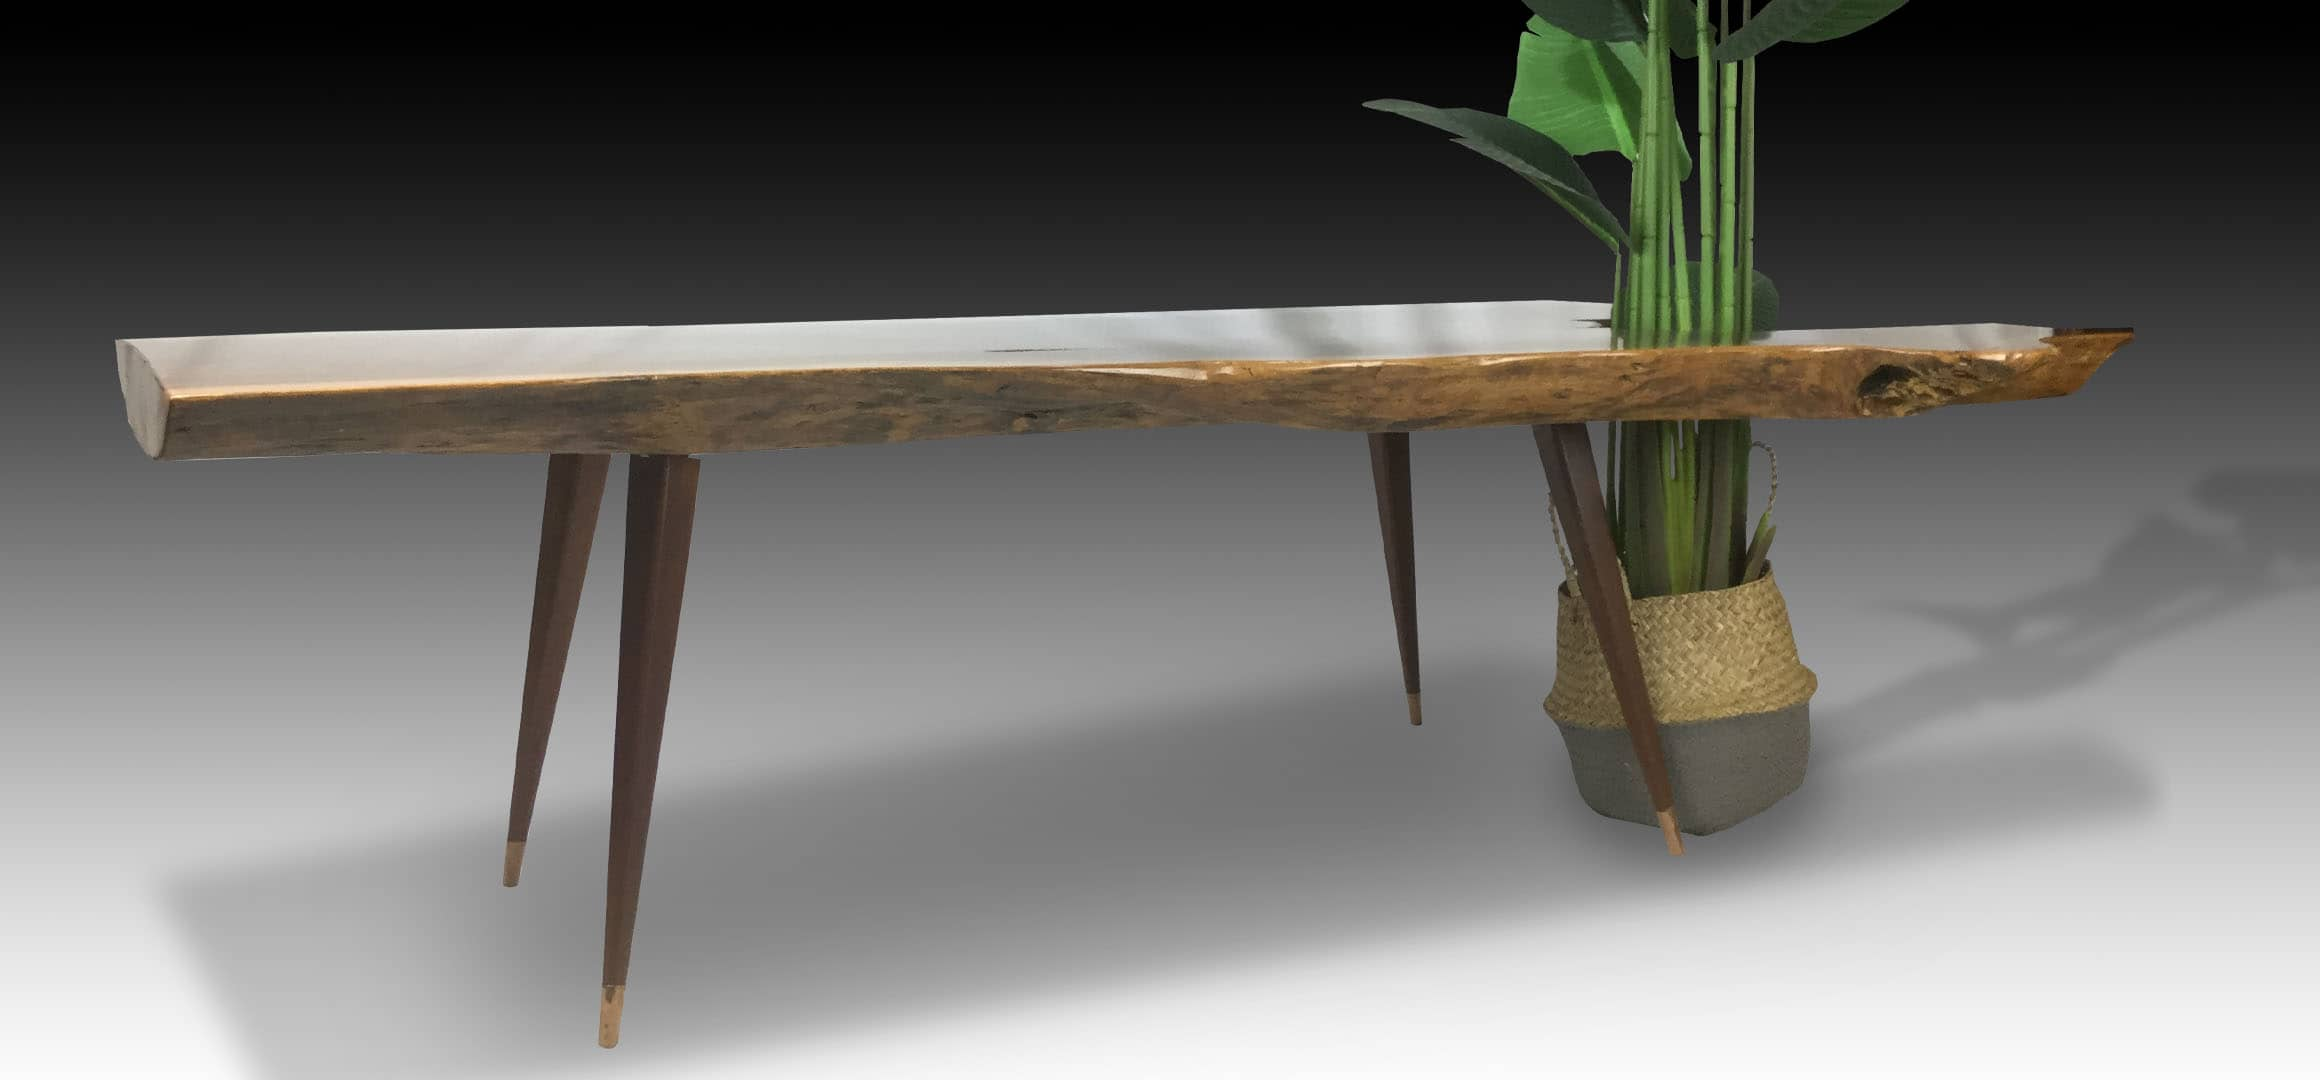 Leopard live edge Walnut wood coffee table with plant side view 3